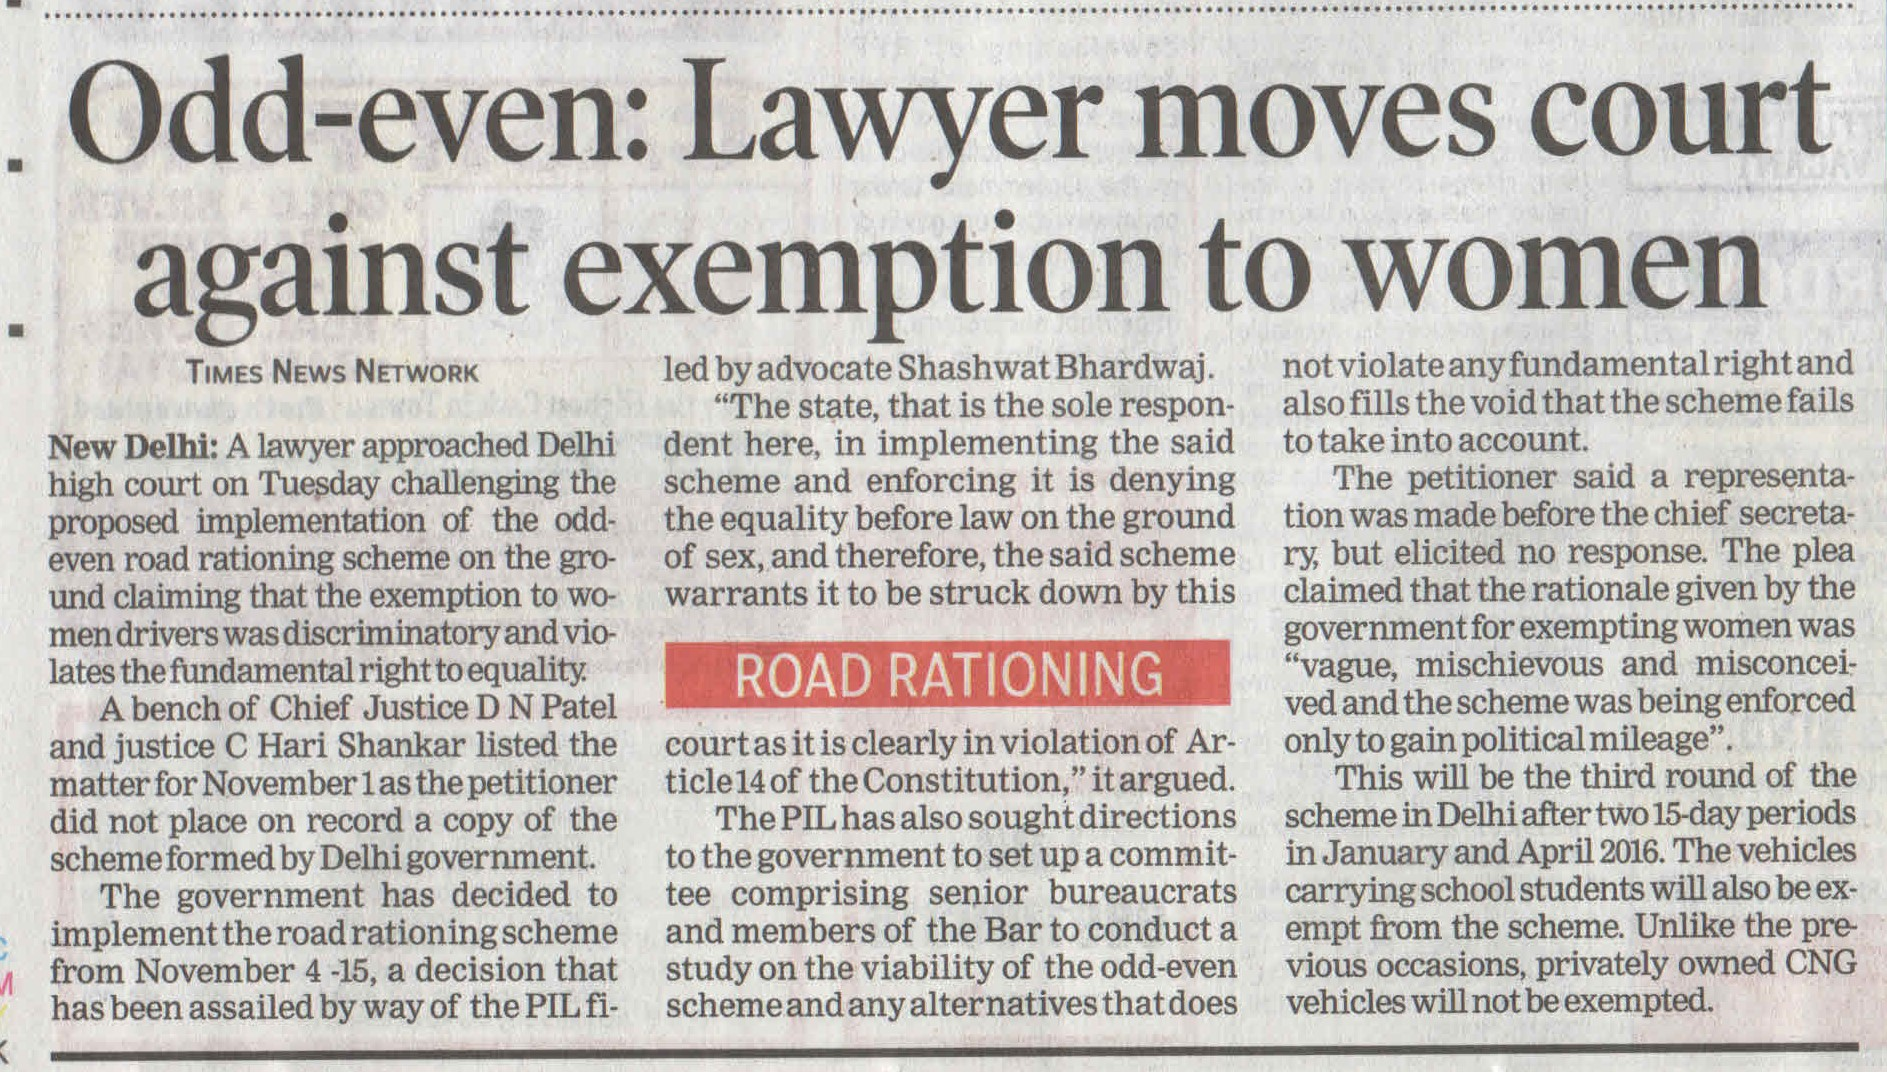 Odd-even: Lawyer moves court against exemption to women